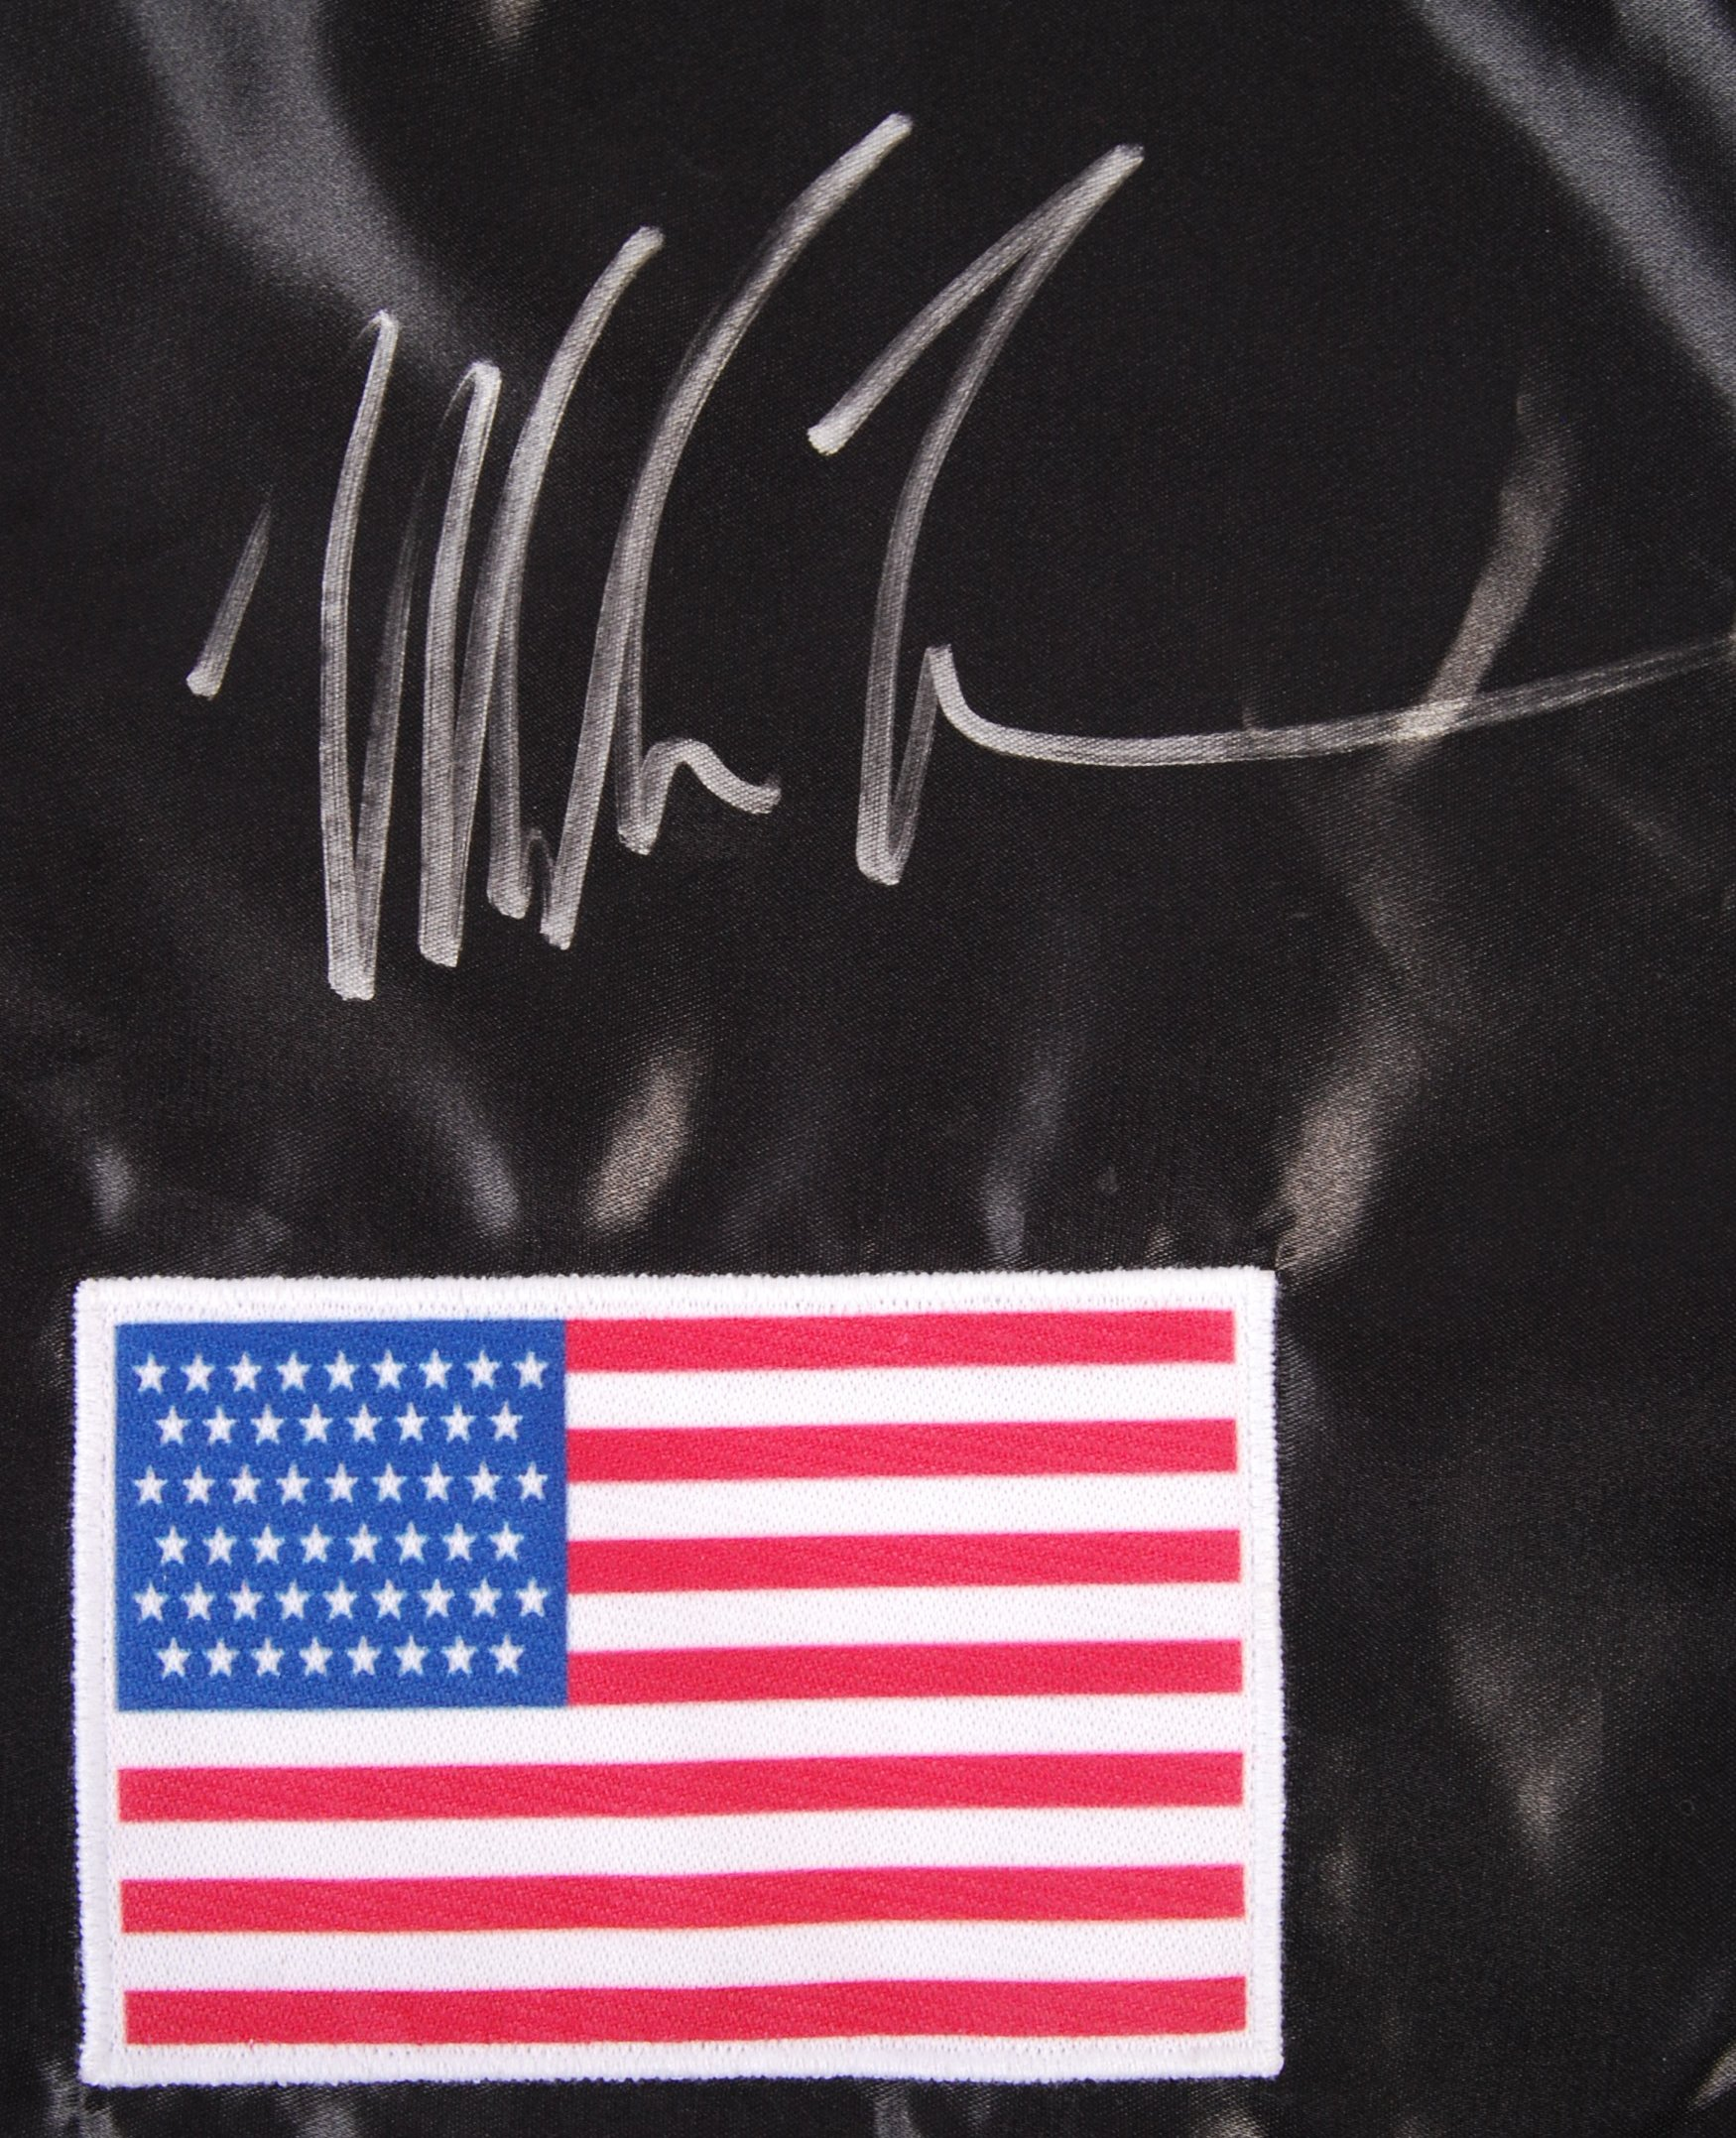 MIKE TYSON - INCREDIBLE SIGNED PAIR OF BOXING SHOR - Image 2 of 5